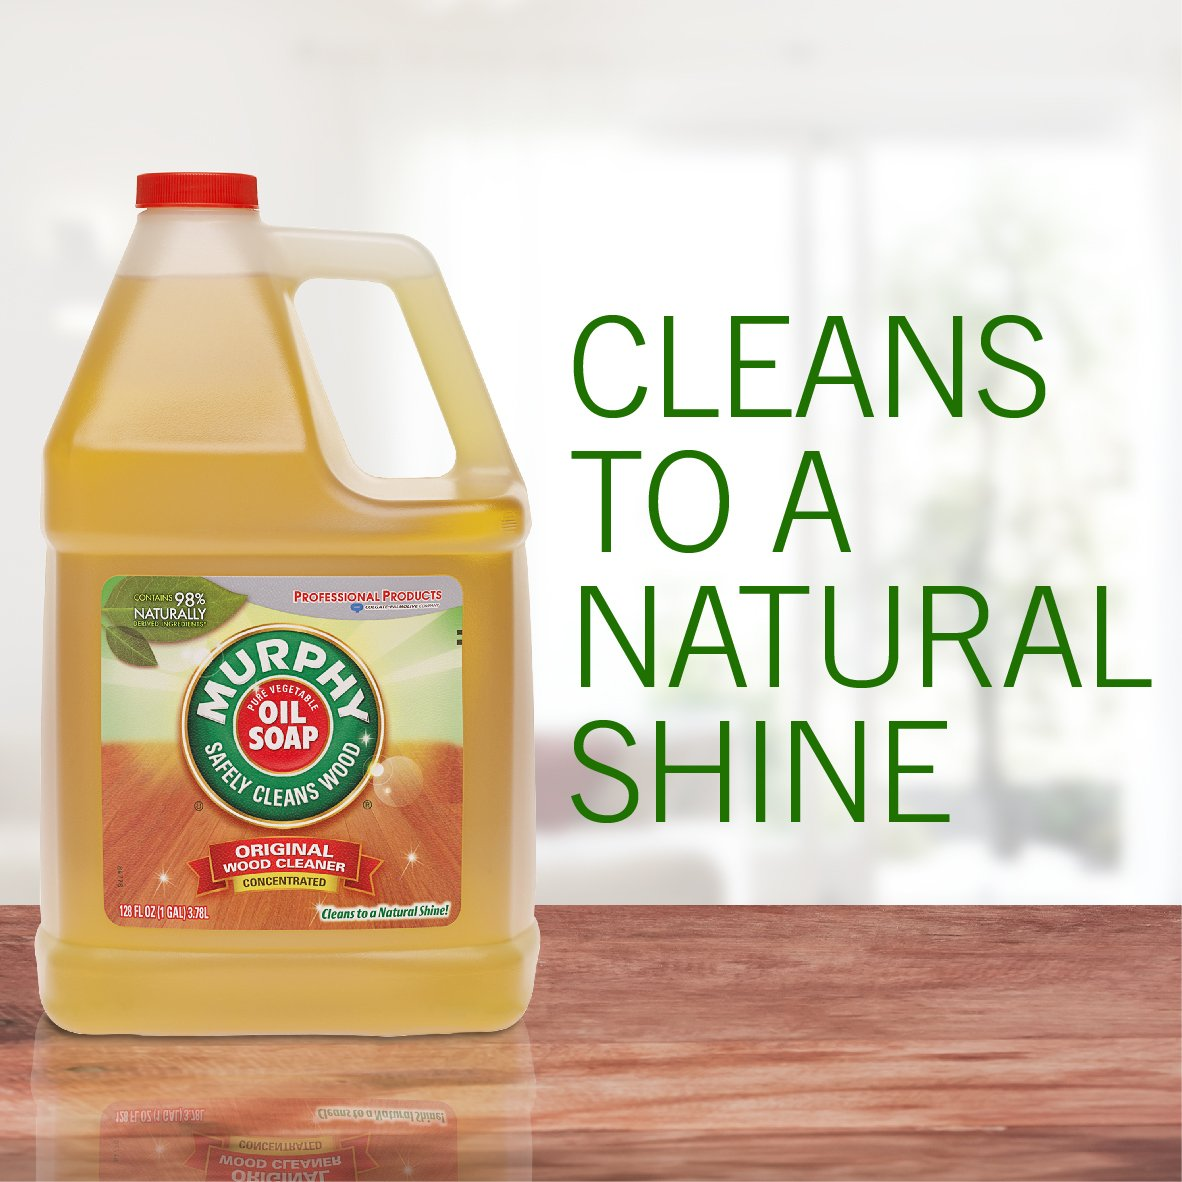 MURPHY OIL SOAP Wood Cleaner, Original, Concentrated Formula, Floor Cleaner, Multi-Use Wood Cleaner, Finished Surface Cleaner, 128 Fluid Ounce (US05480A) by Murphy Oil (Image #3)